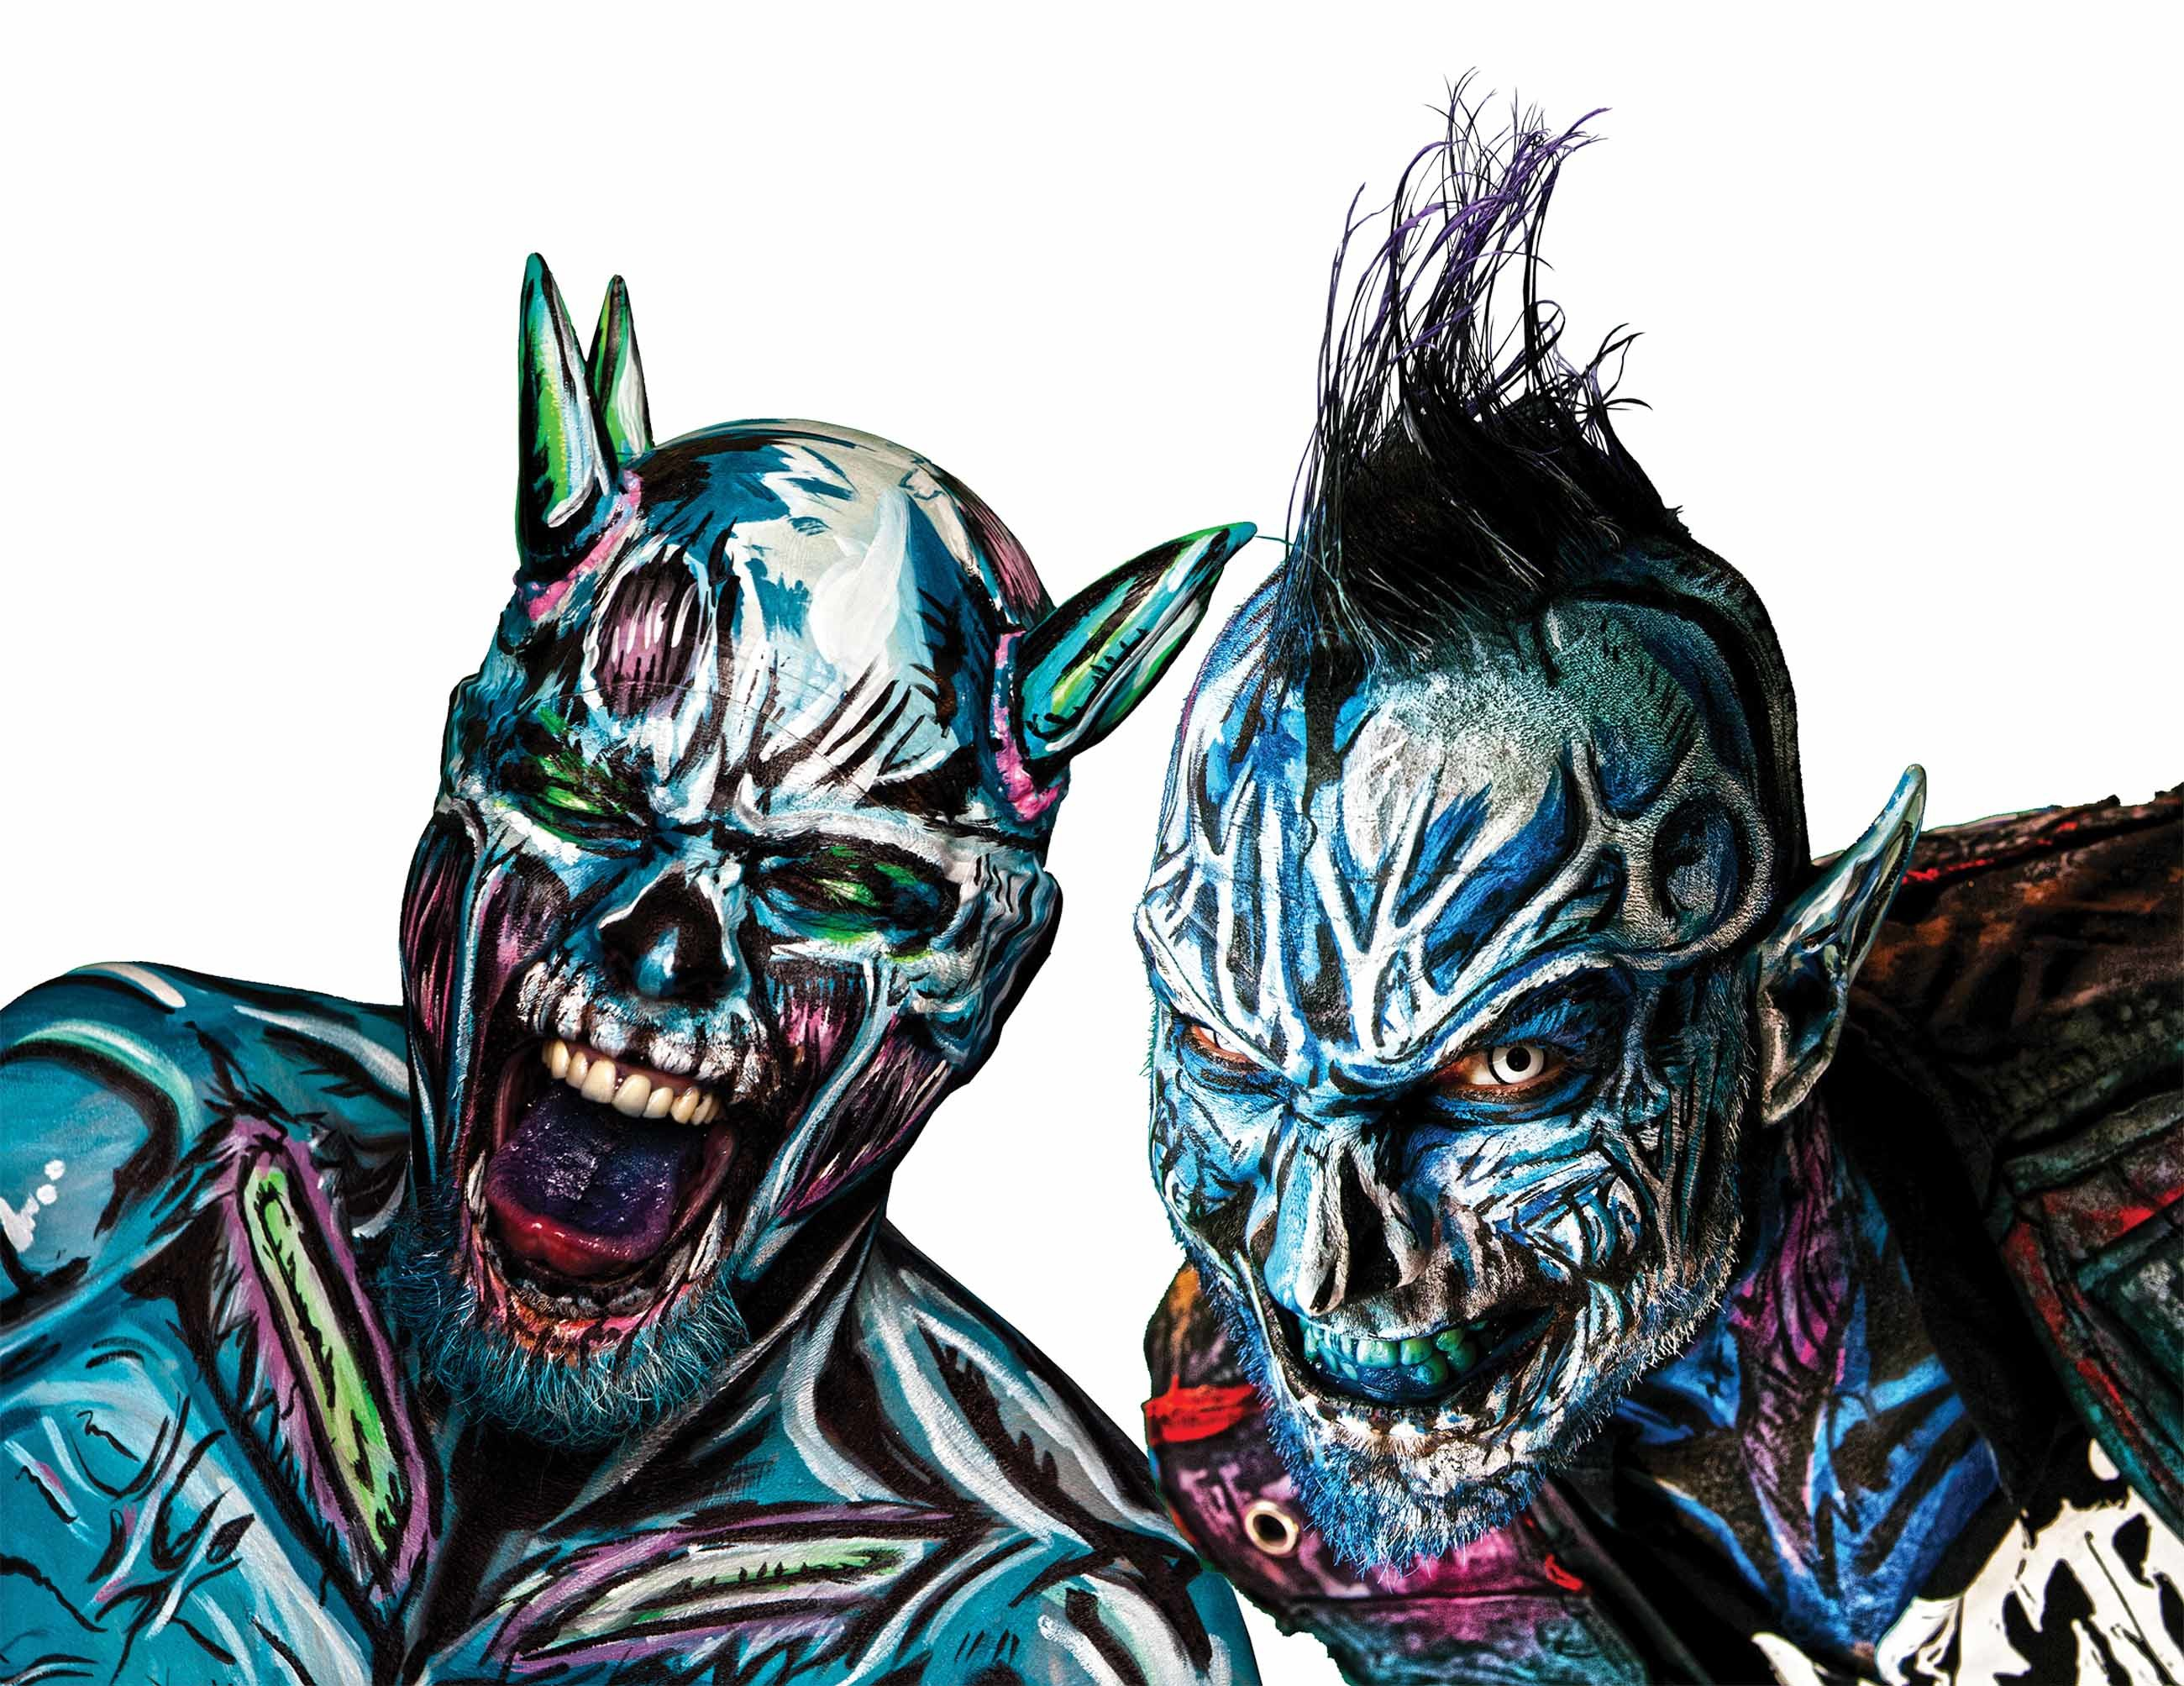 Mike Chaiken has published an article on The Southington Observer about the  Demented Duo, Twiztid.